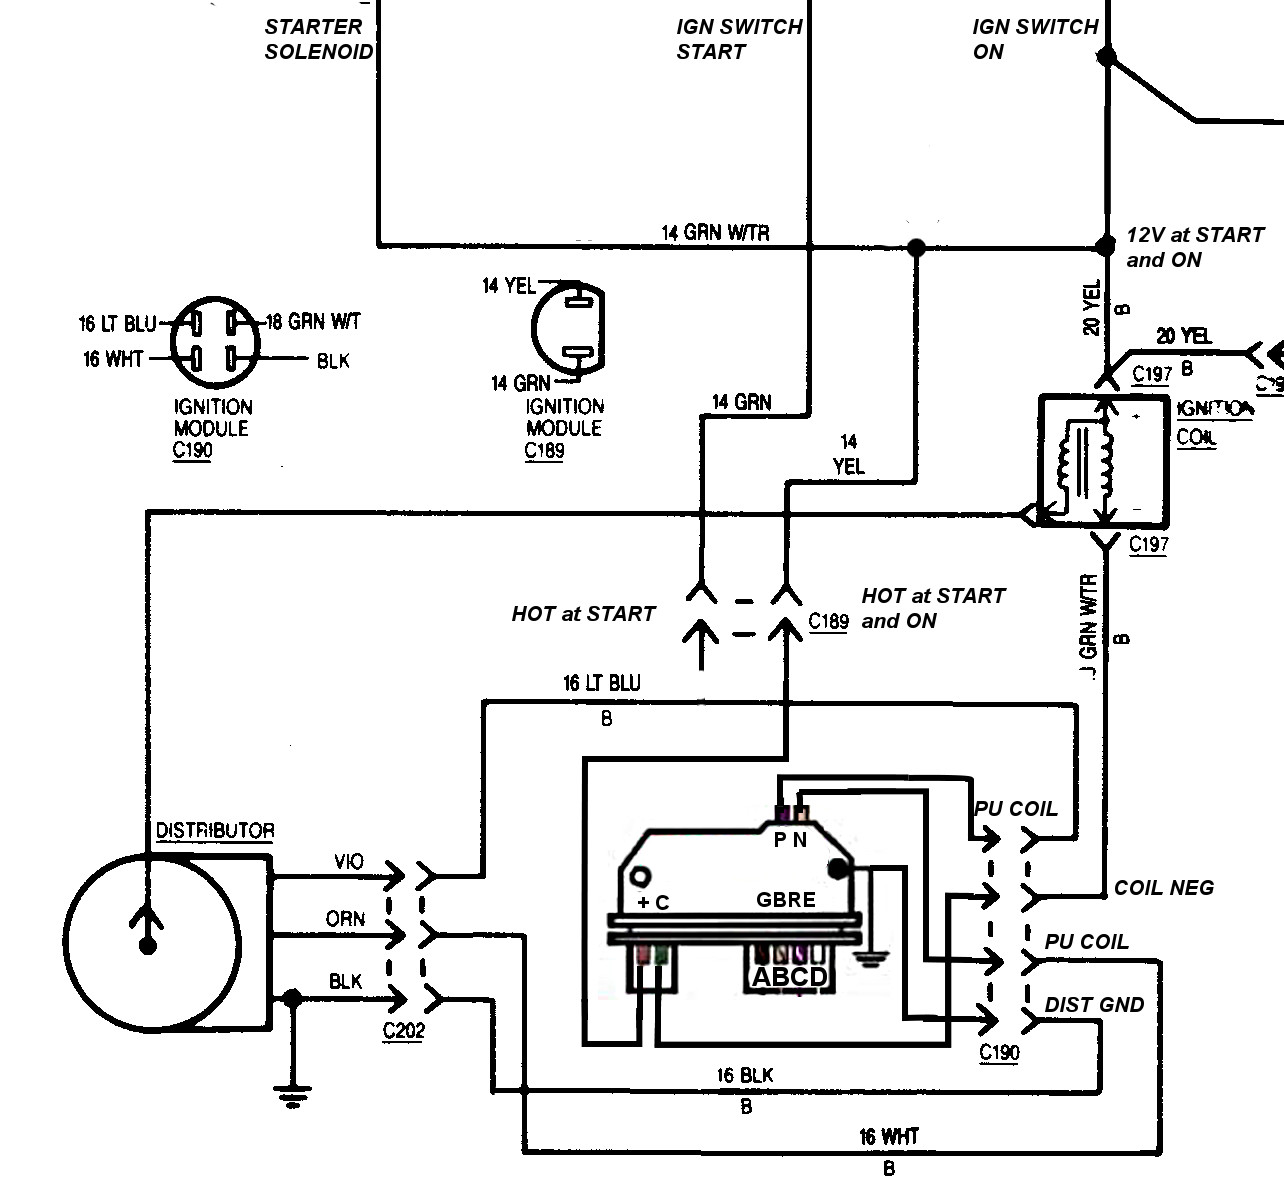 Tbi Wiring on Dyna S Ignition Wiring Diagram